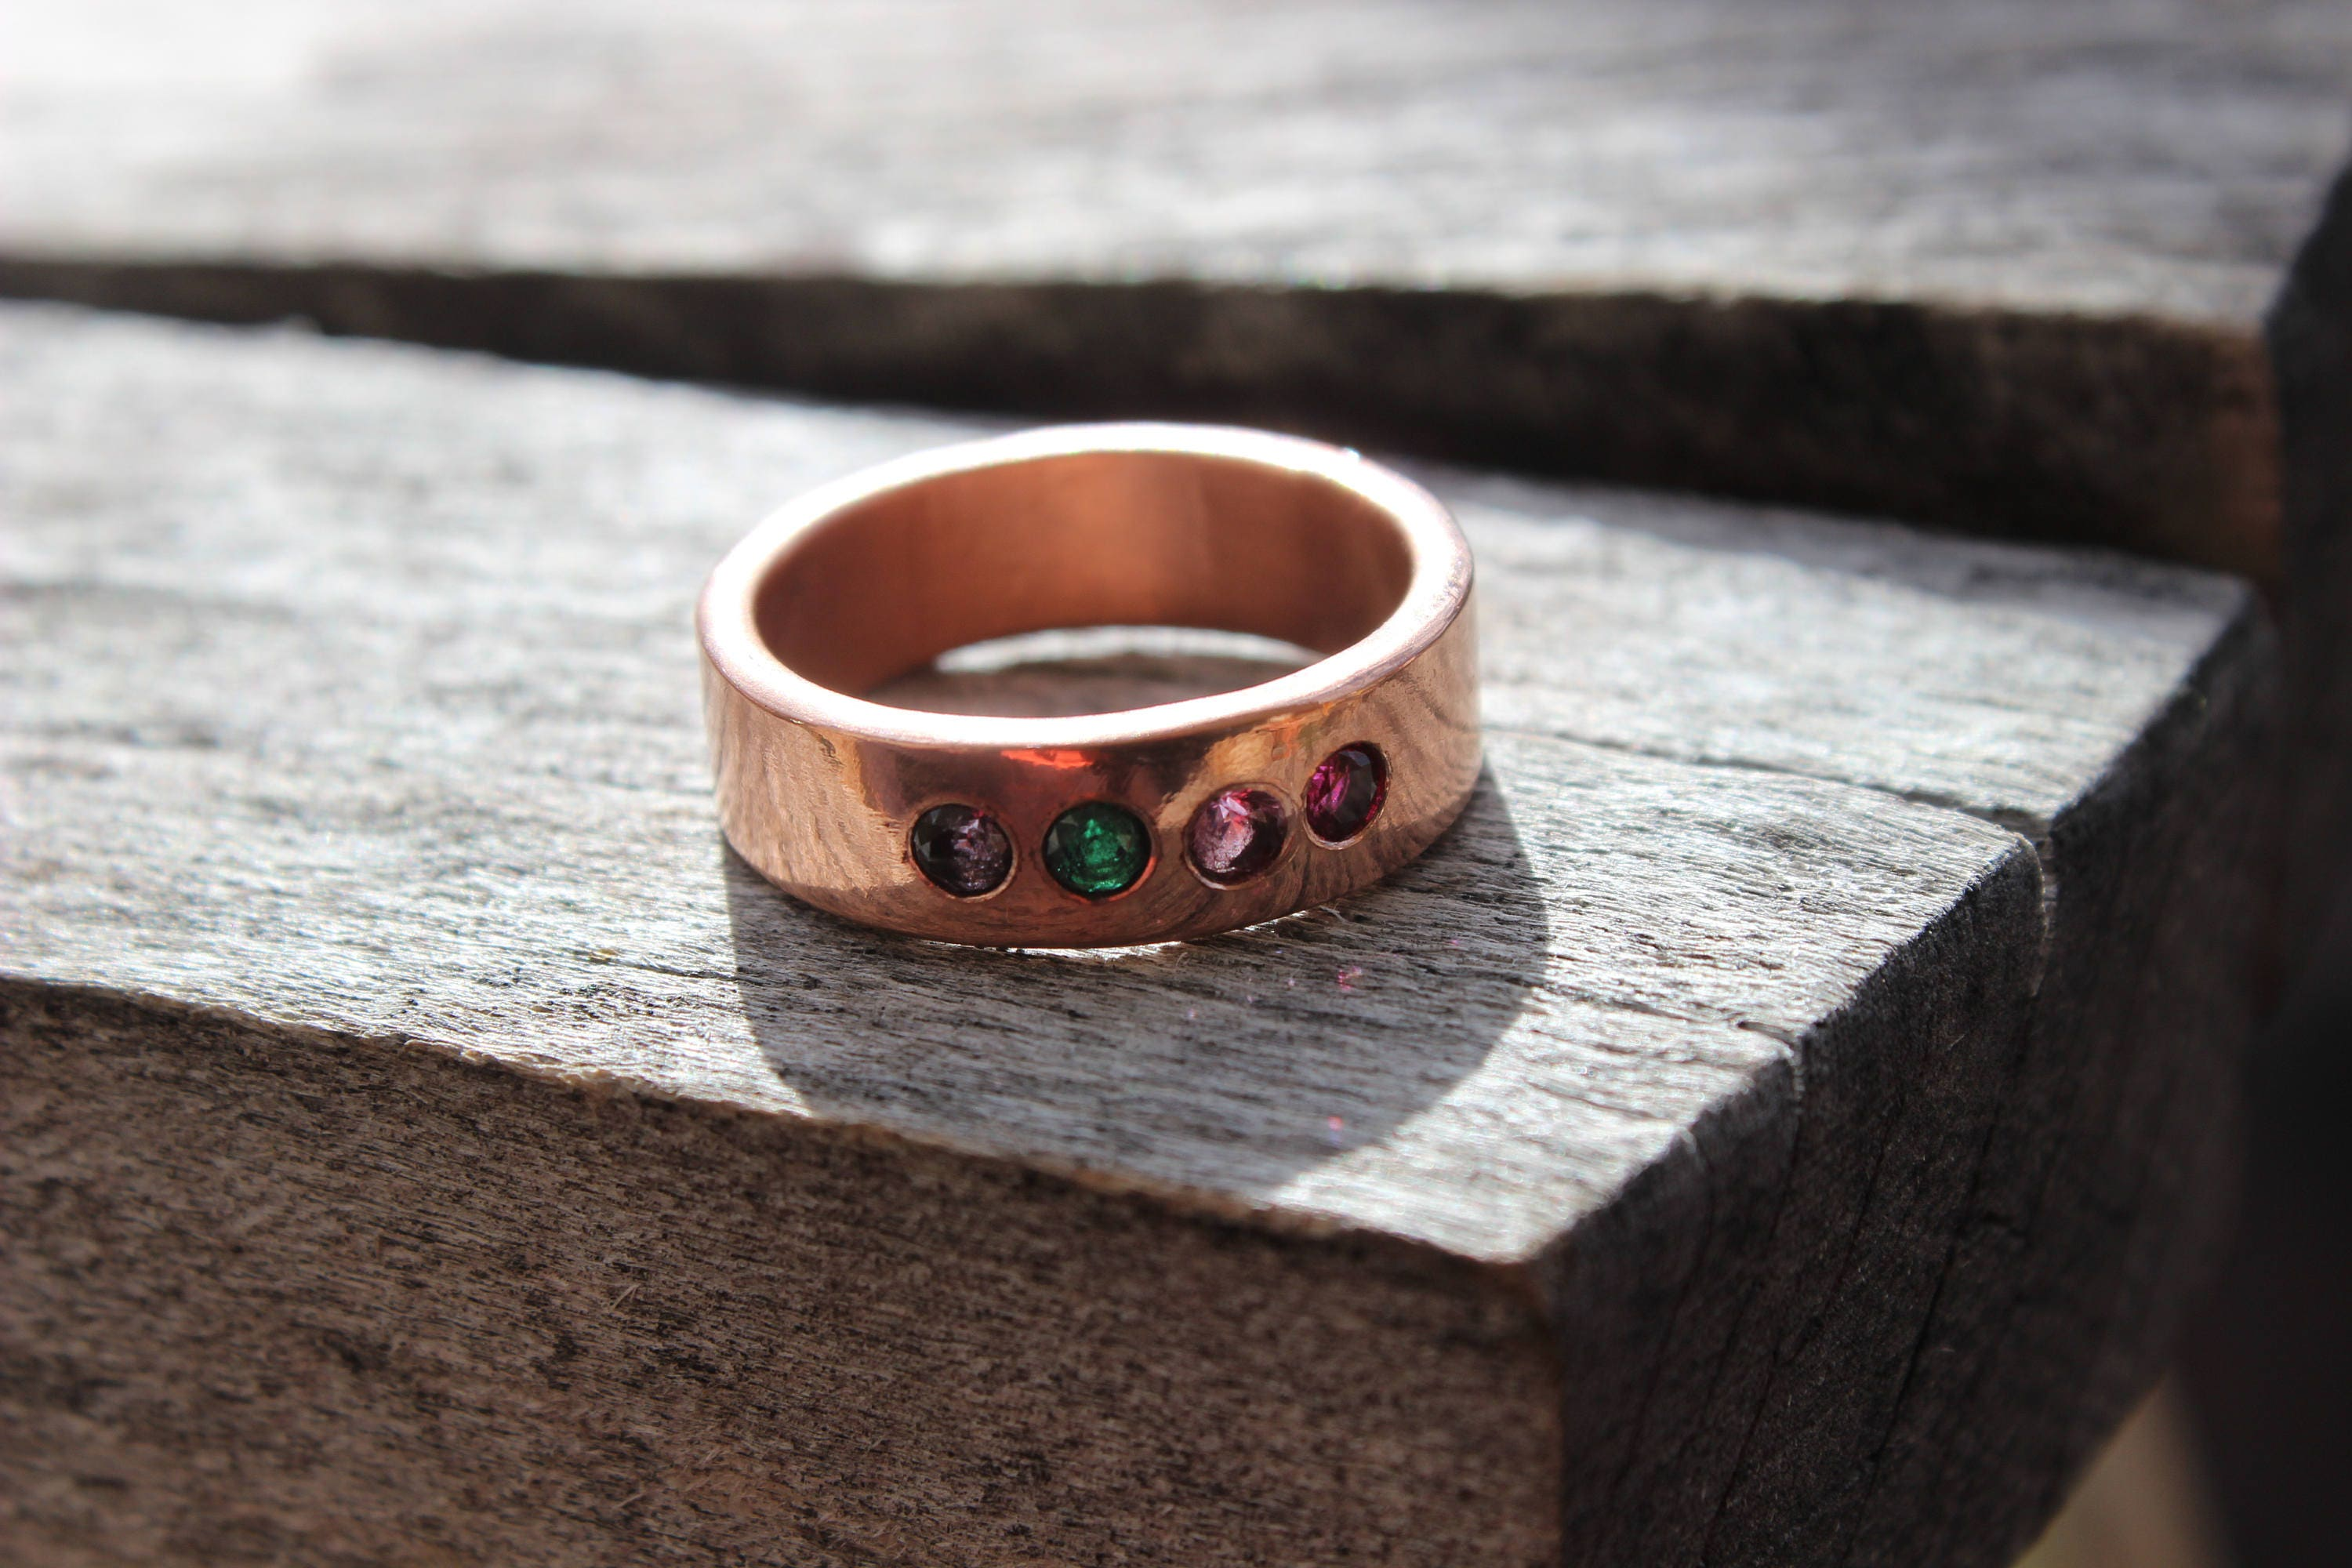 Family Birthstone Copper Ring 7 Year Anniversary Gift Men Women Reclaimed Recycled Handmade Copper Ring Rustic Minimalist Ring & Family Birthstone Copper Ring 7 Year Anniversary Gift Men Women ...